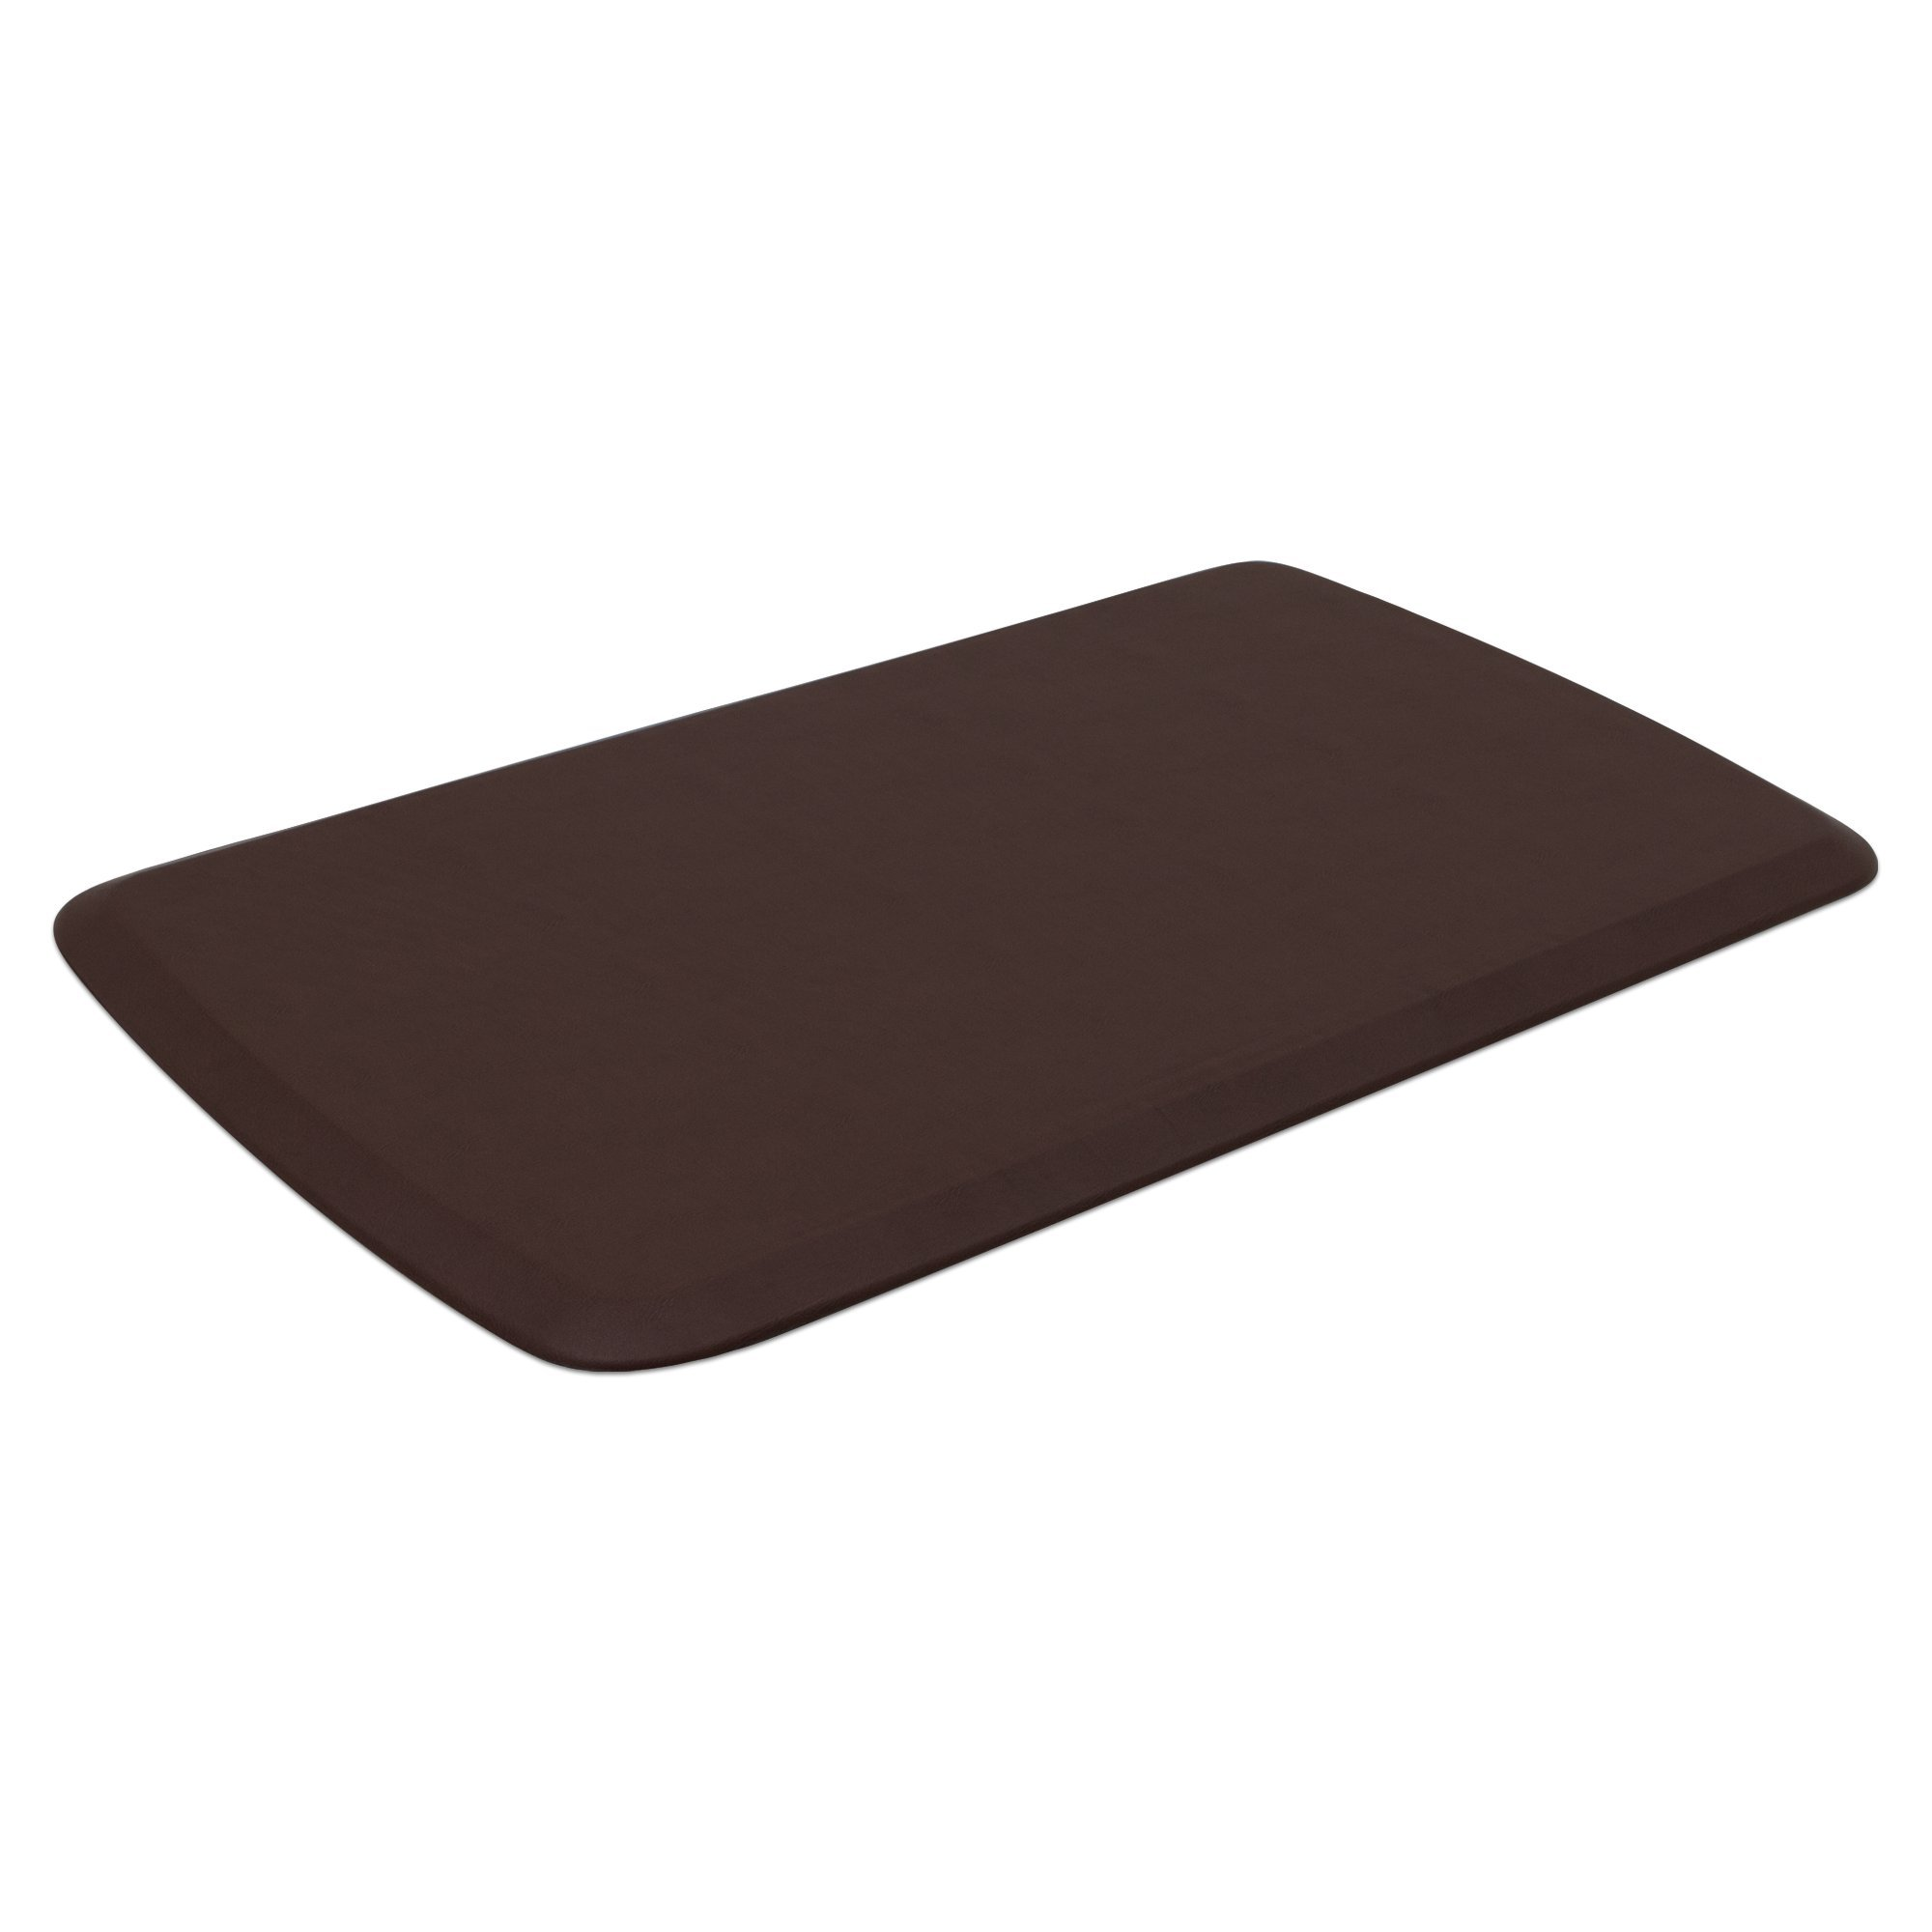 "GelPro Elite Premier Anti-Fatigue Kitchen Comfort Floor Mat, 20x36"", Vintage Leather Sherry Stain Resistant Surface with therapeutic gel and energy-return foam for health & wellness by GelPro (Image #2)"